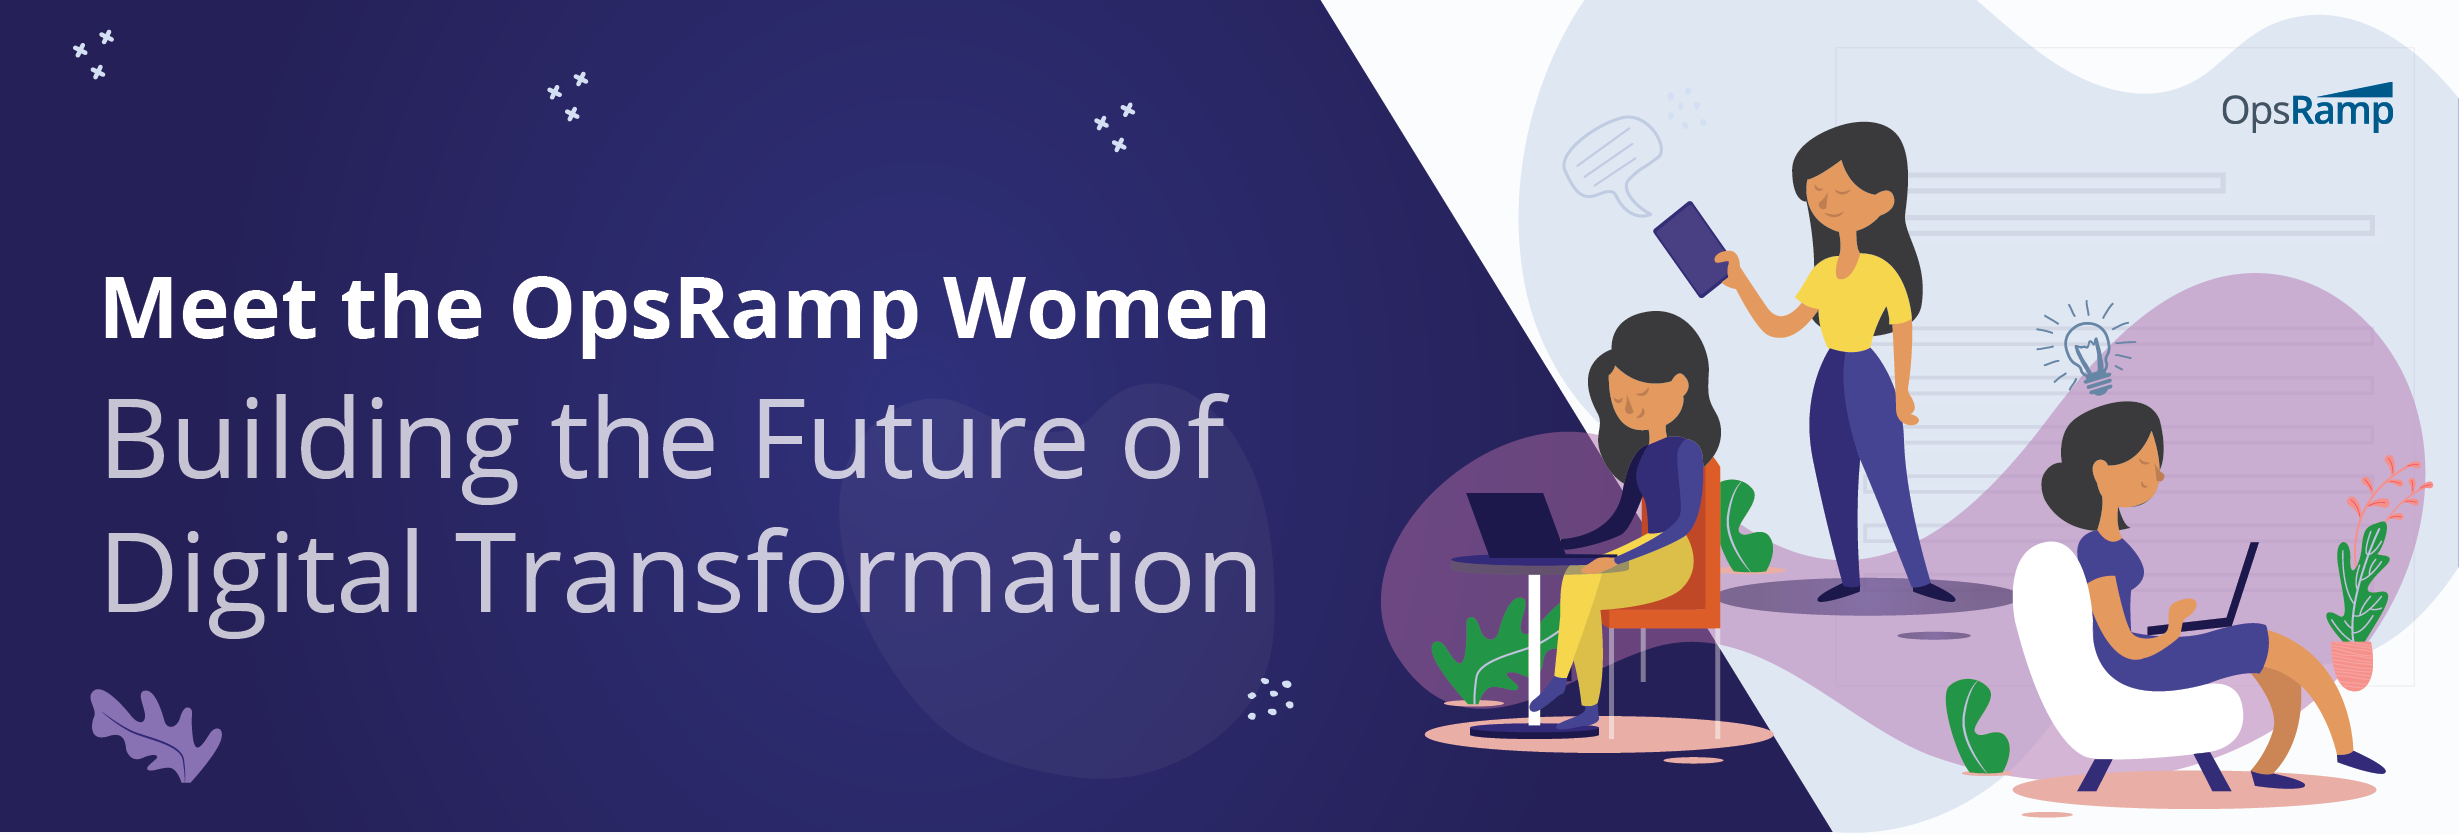 Meet the OpsRamp Women Building the Future of Digital Transformation